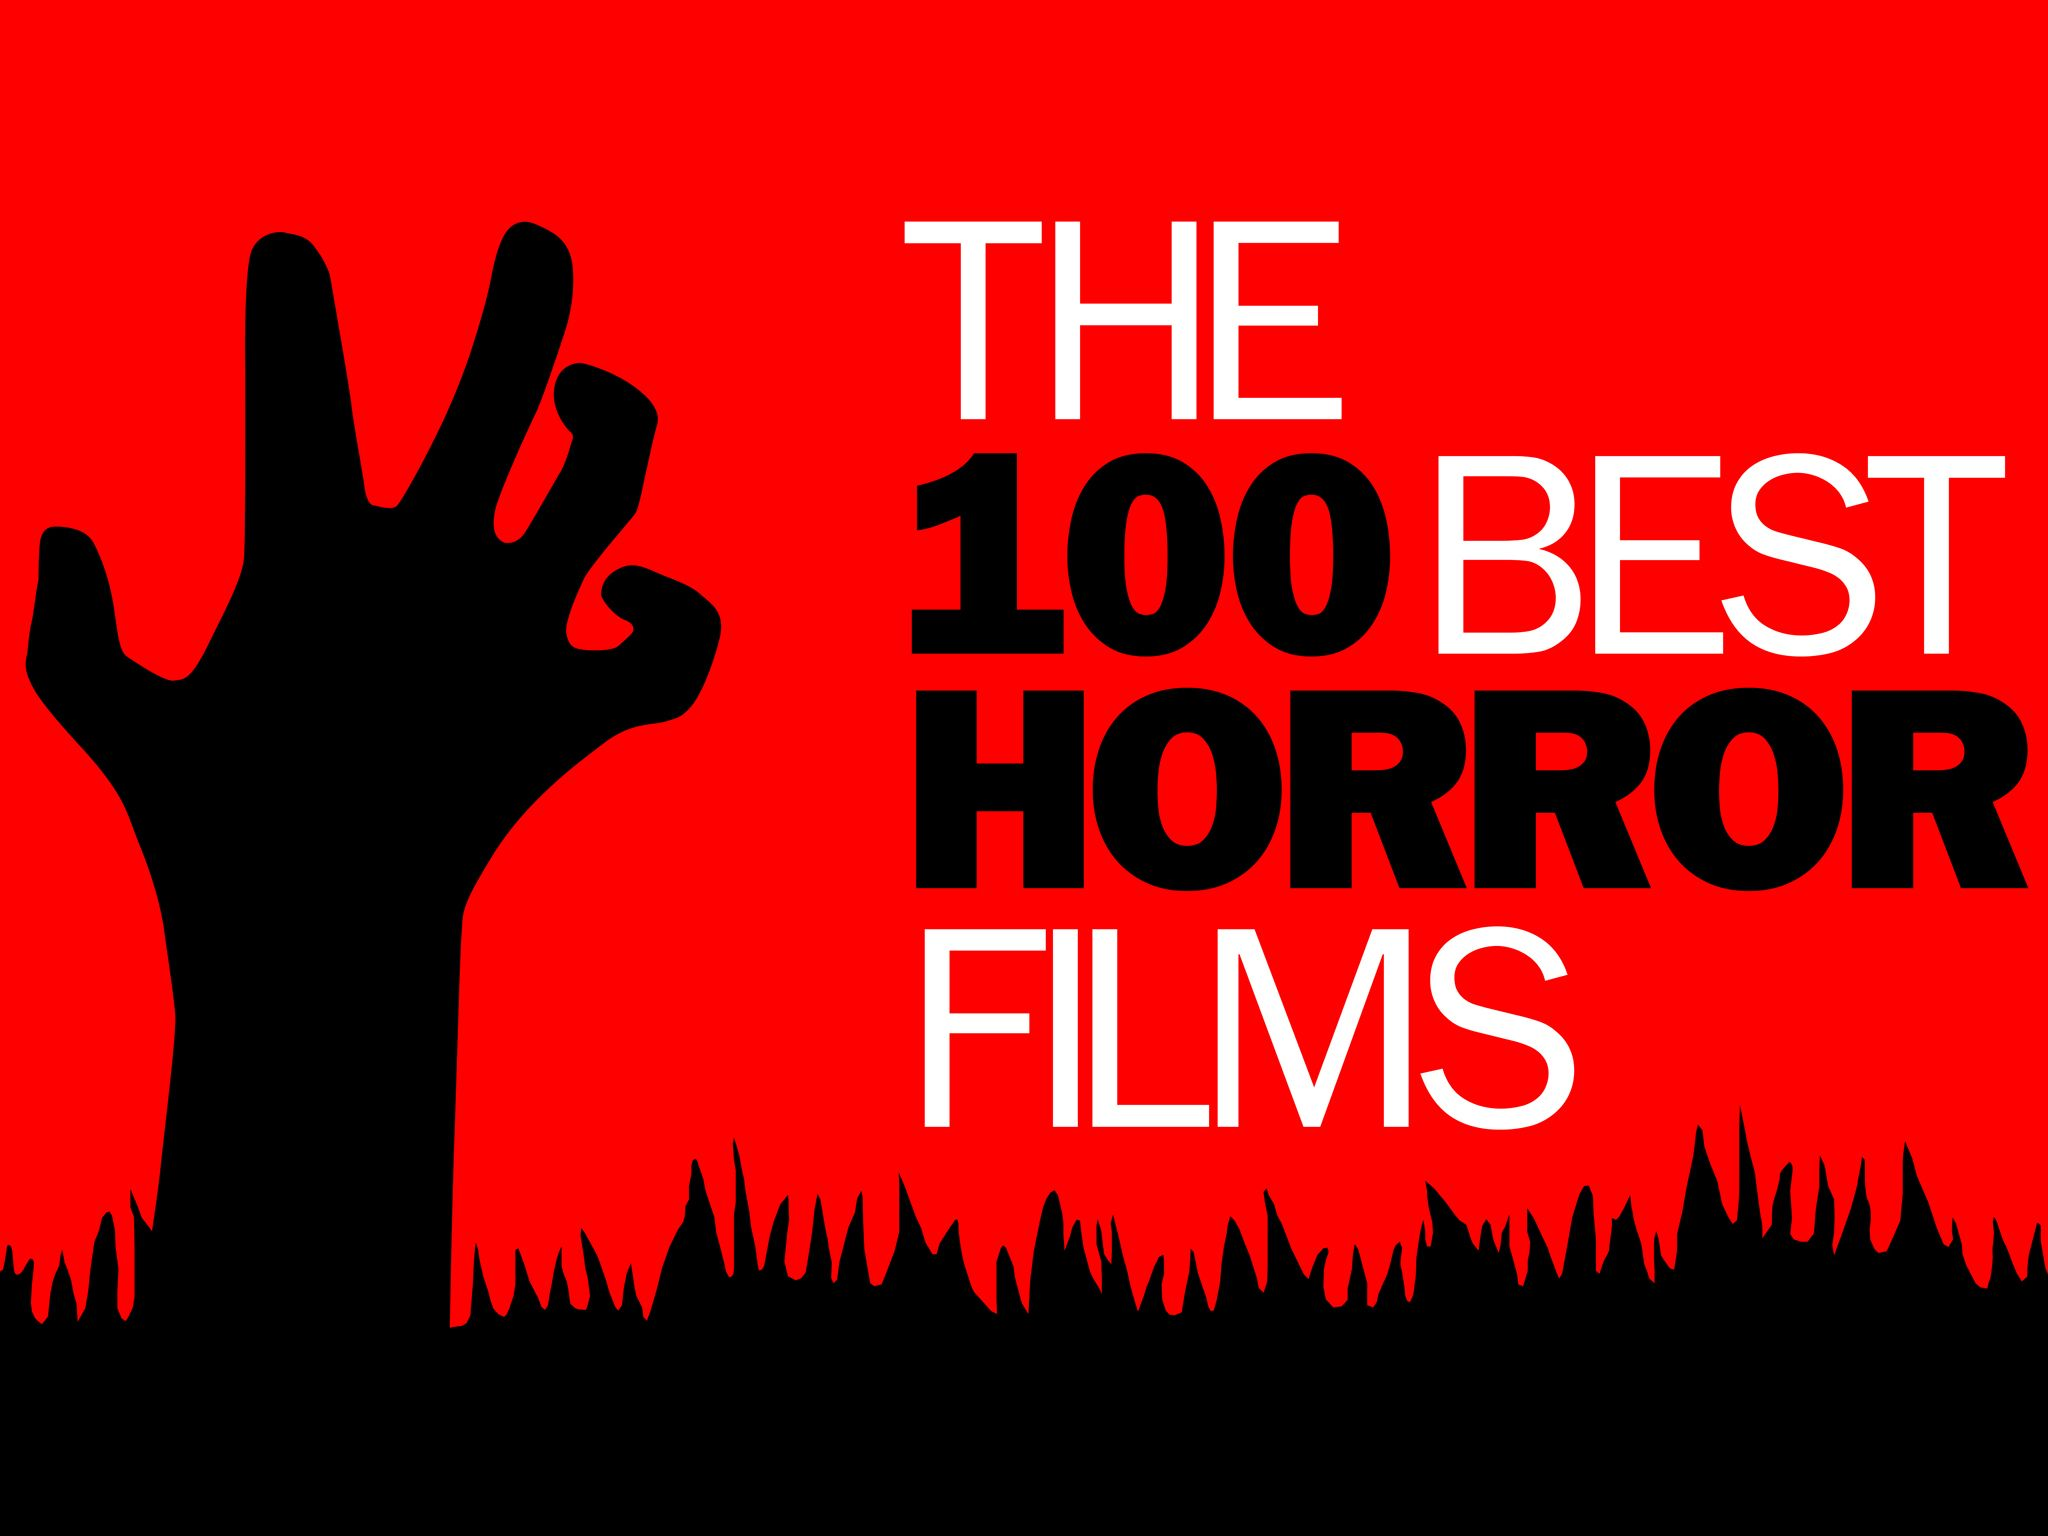 The 100 Best Horror Movies The Scariest Films Ranked By Experts Horror Films Best Horrors Scary Films